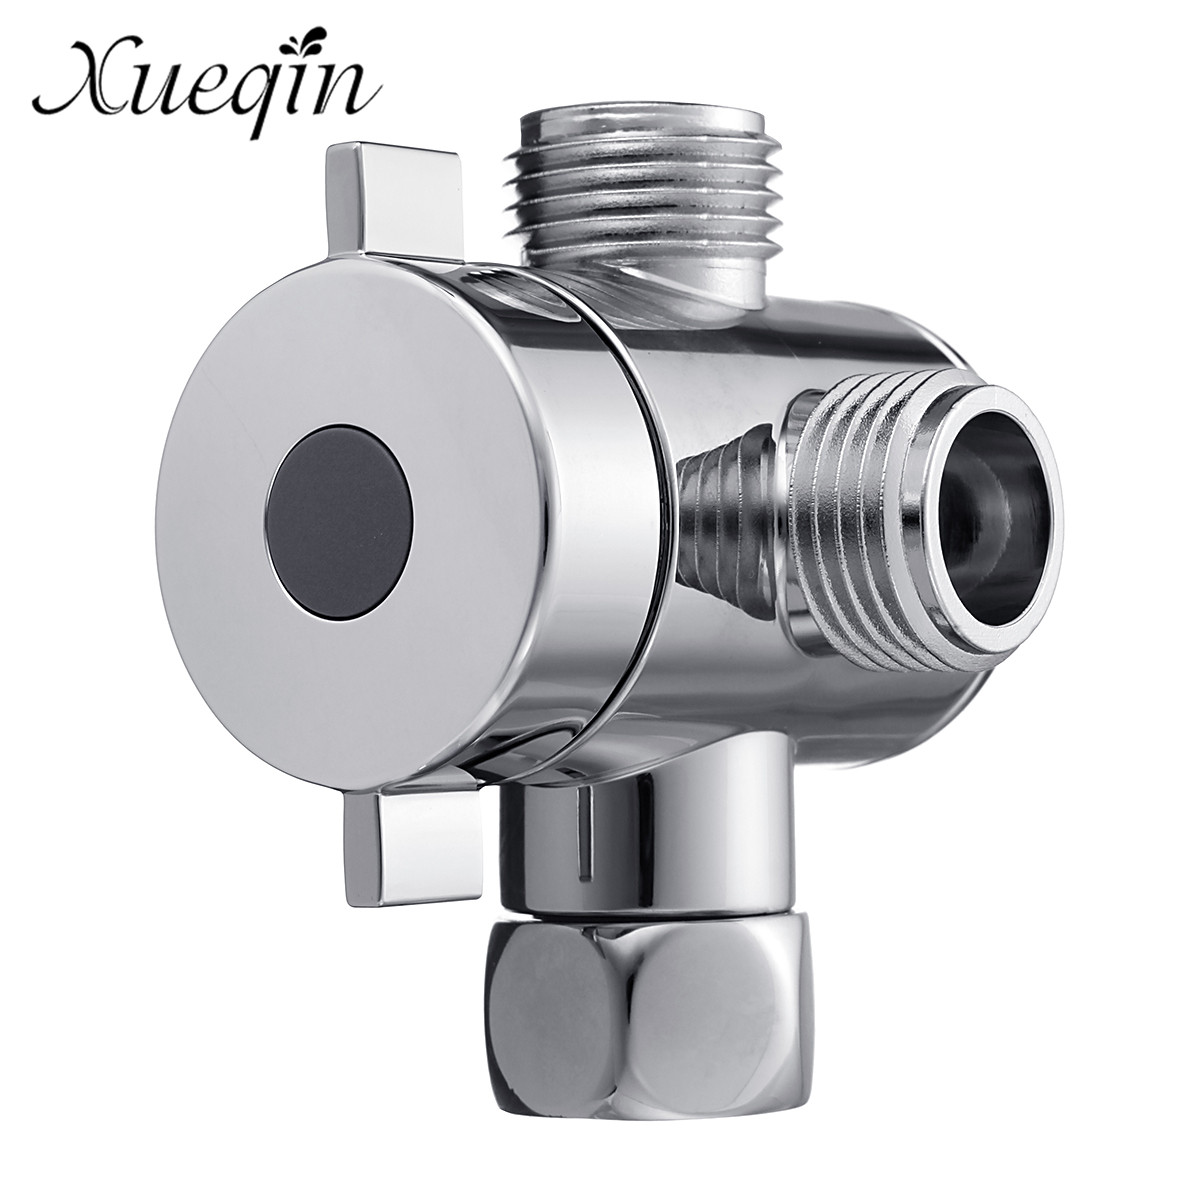 Us 4 32 42 Off Xueqin Three Head Function Shower Head Diverter Valve Switch Adapter Control Valve 3 Way Tee Connector Toilet Bidet In Faucet